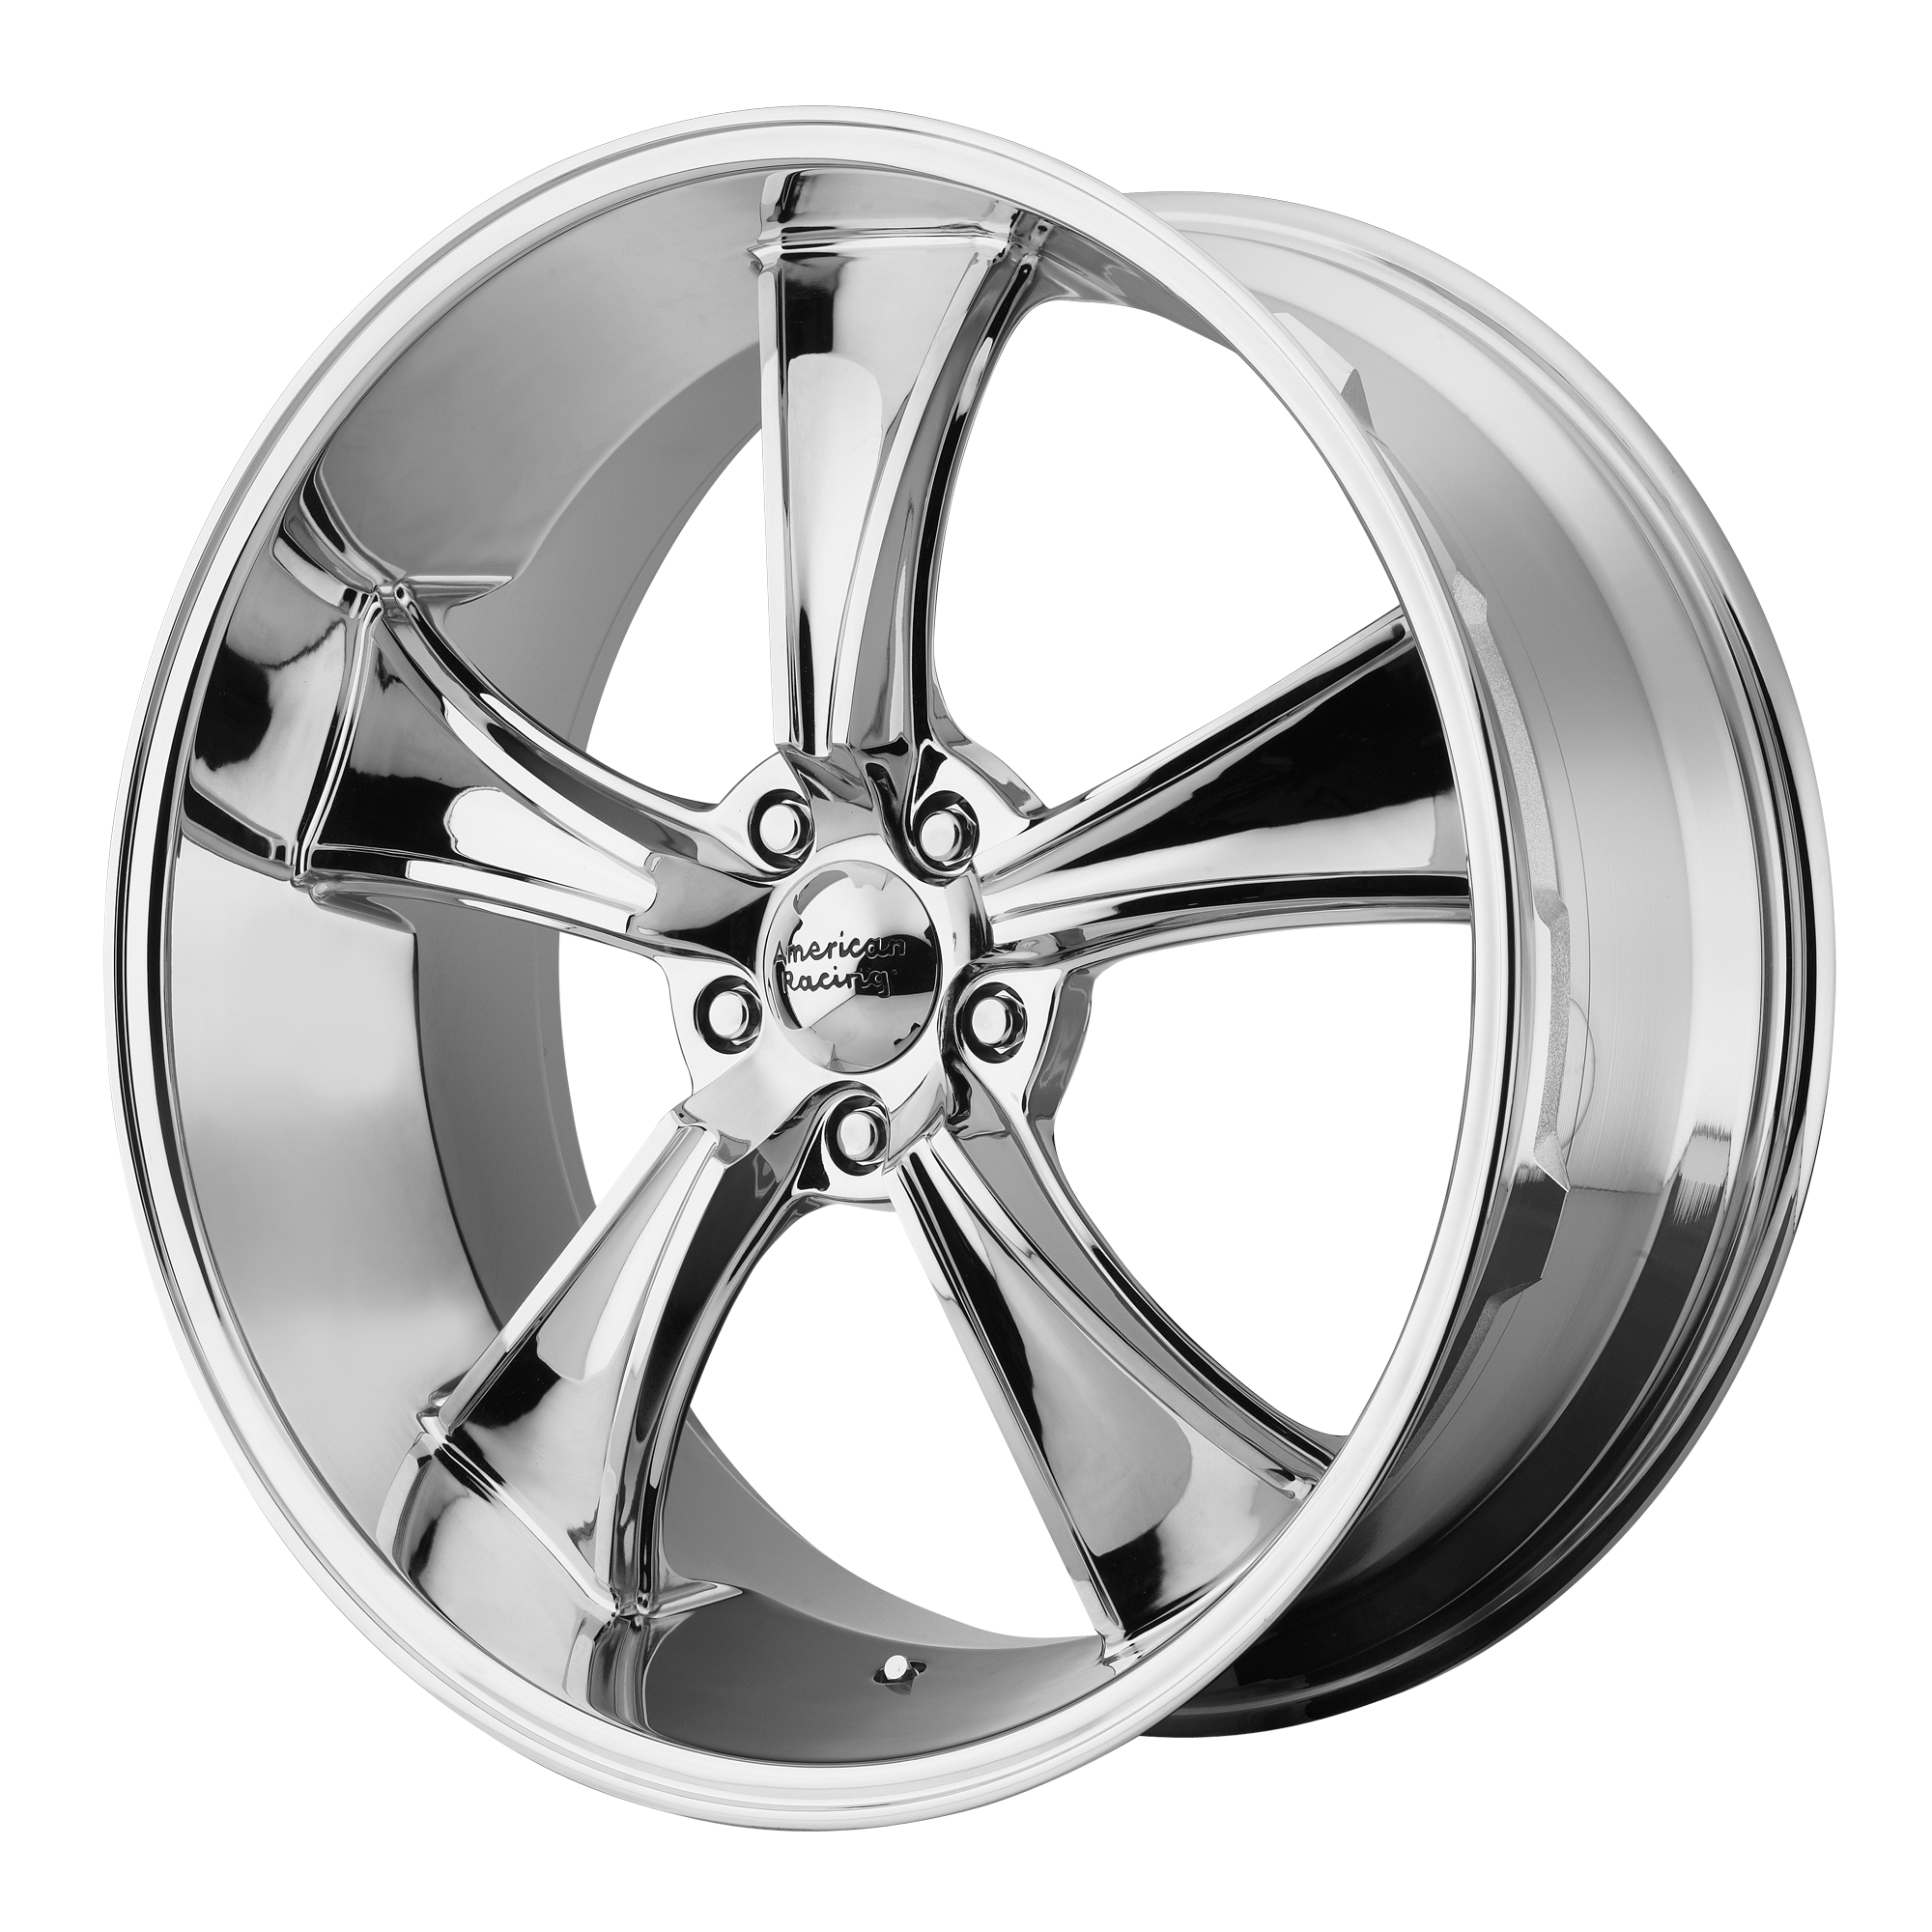 American Racing Blvd Chrome 18x9.5 5x120.65 0